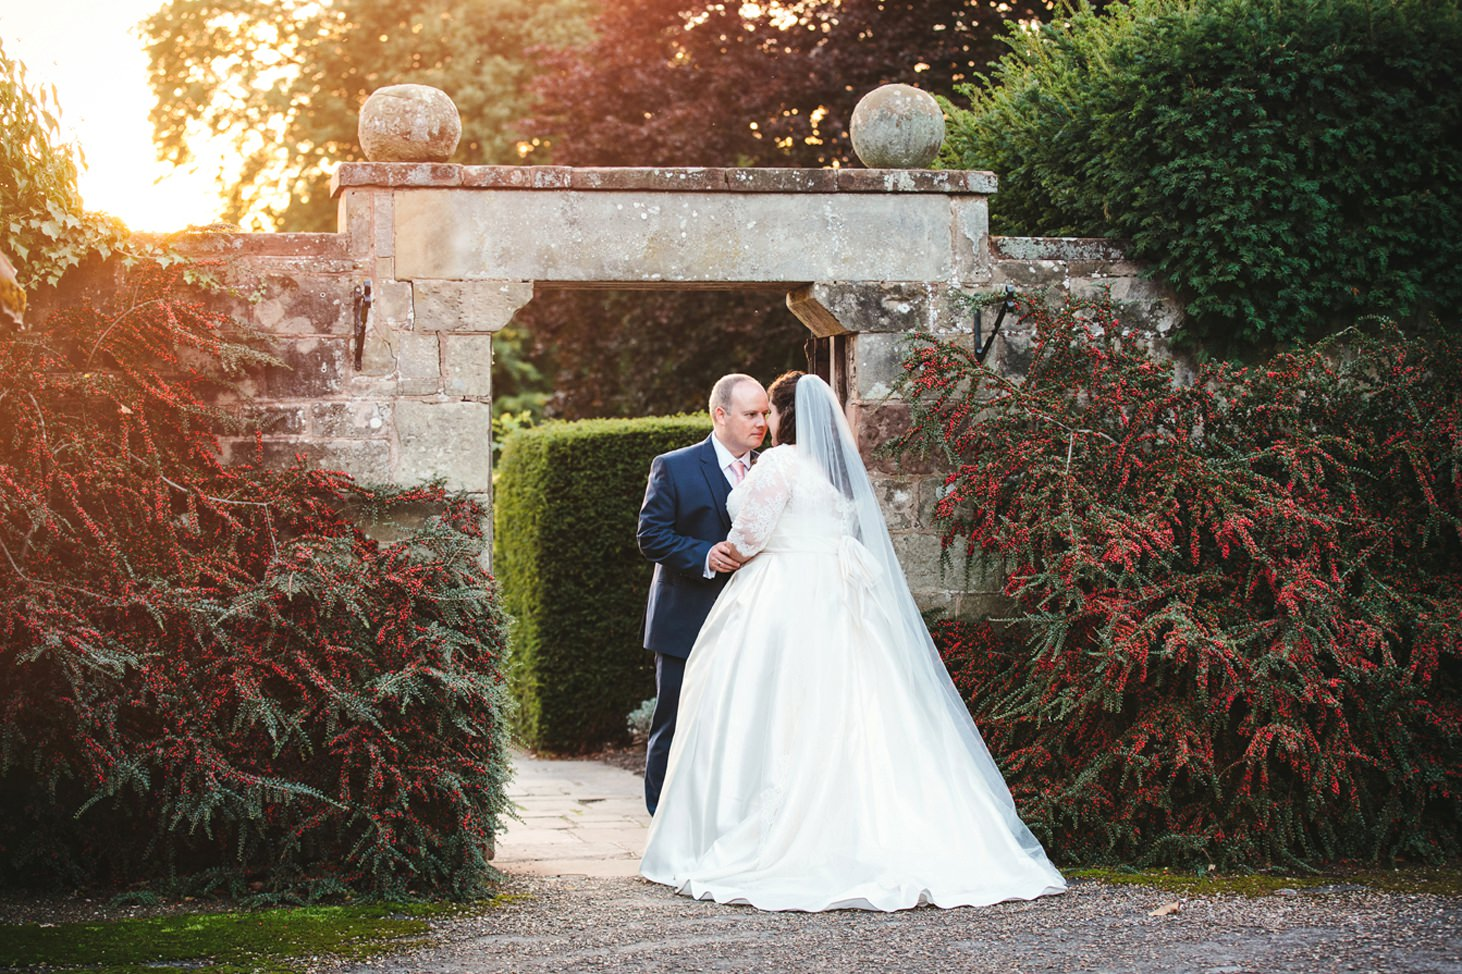 Natural wedding photography in coombe abbey hotel